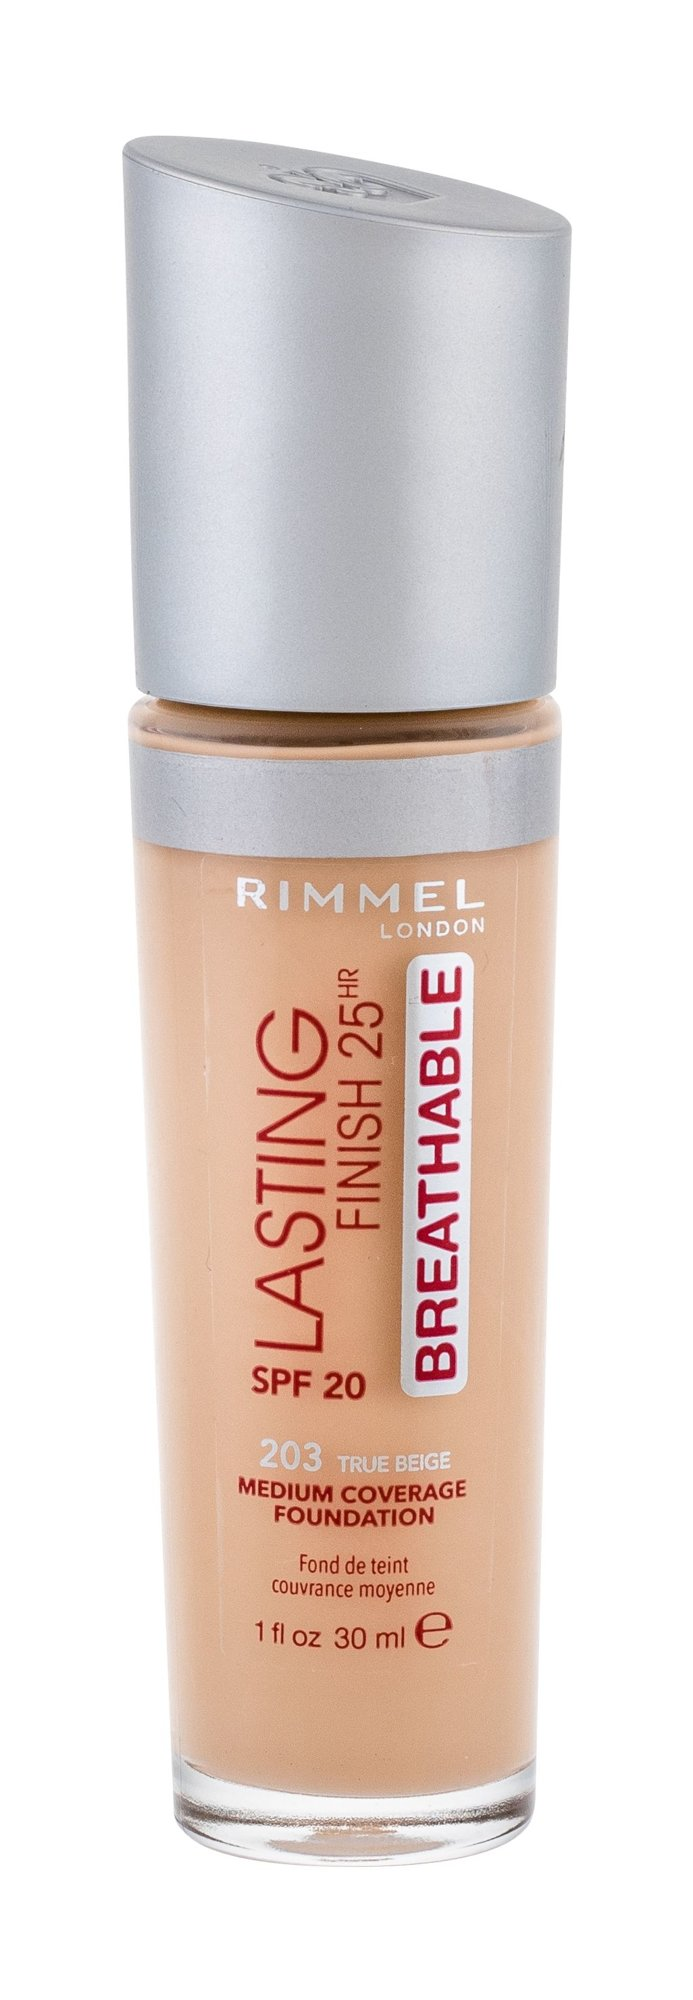 Rimmel London Lasting Finish Makeup 30ml 203 True Beige